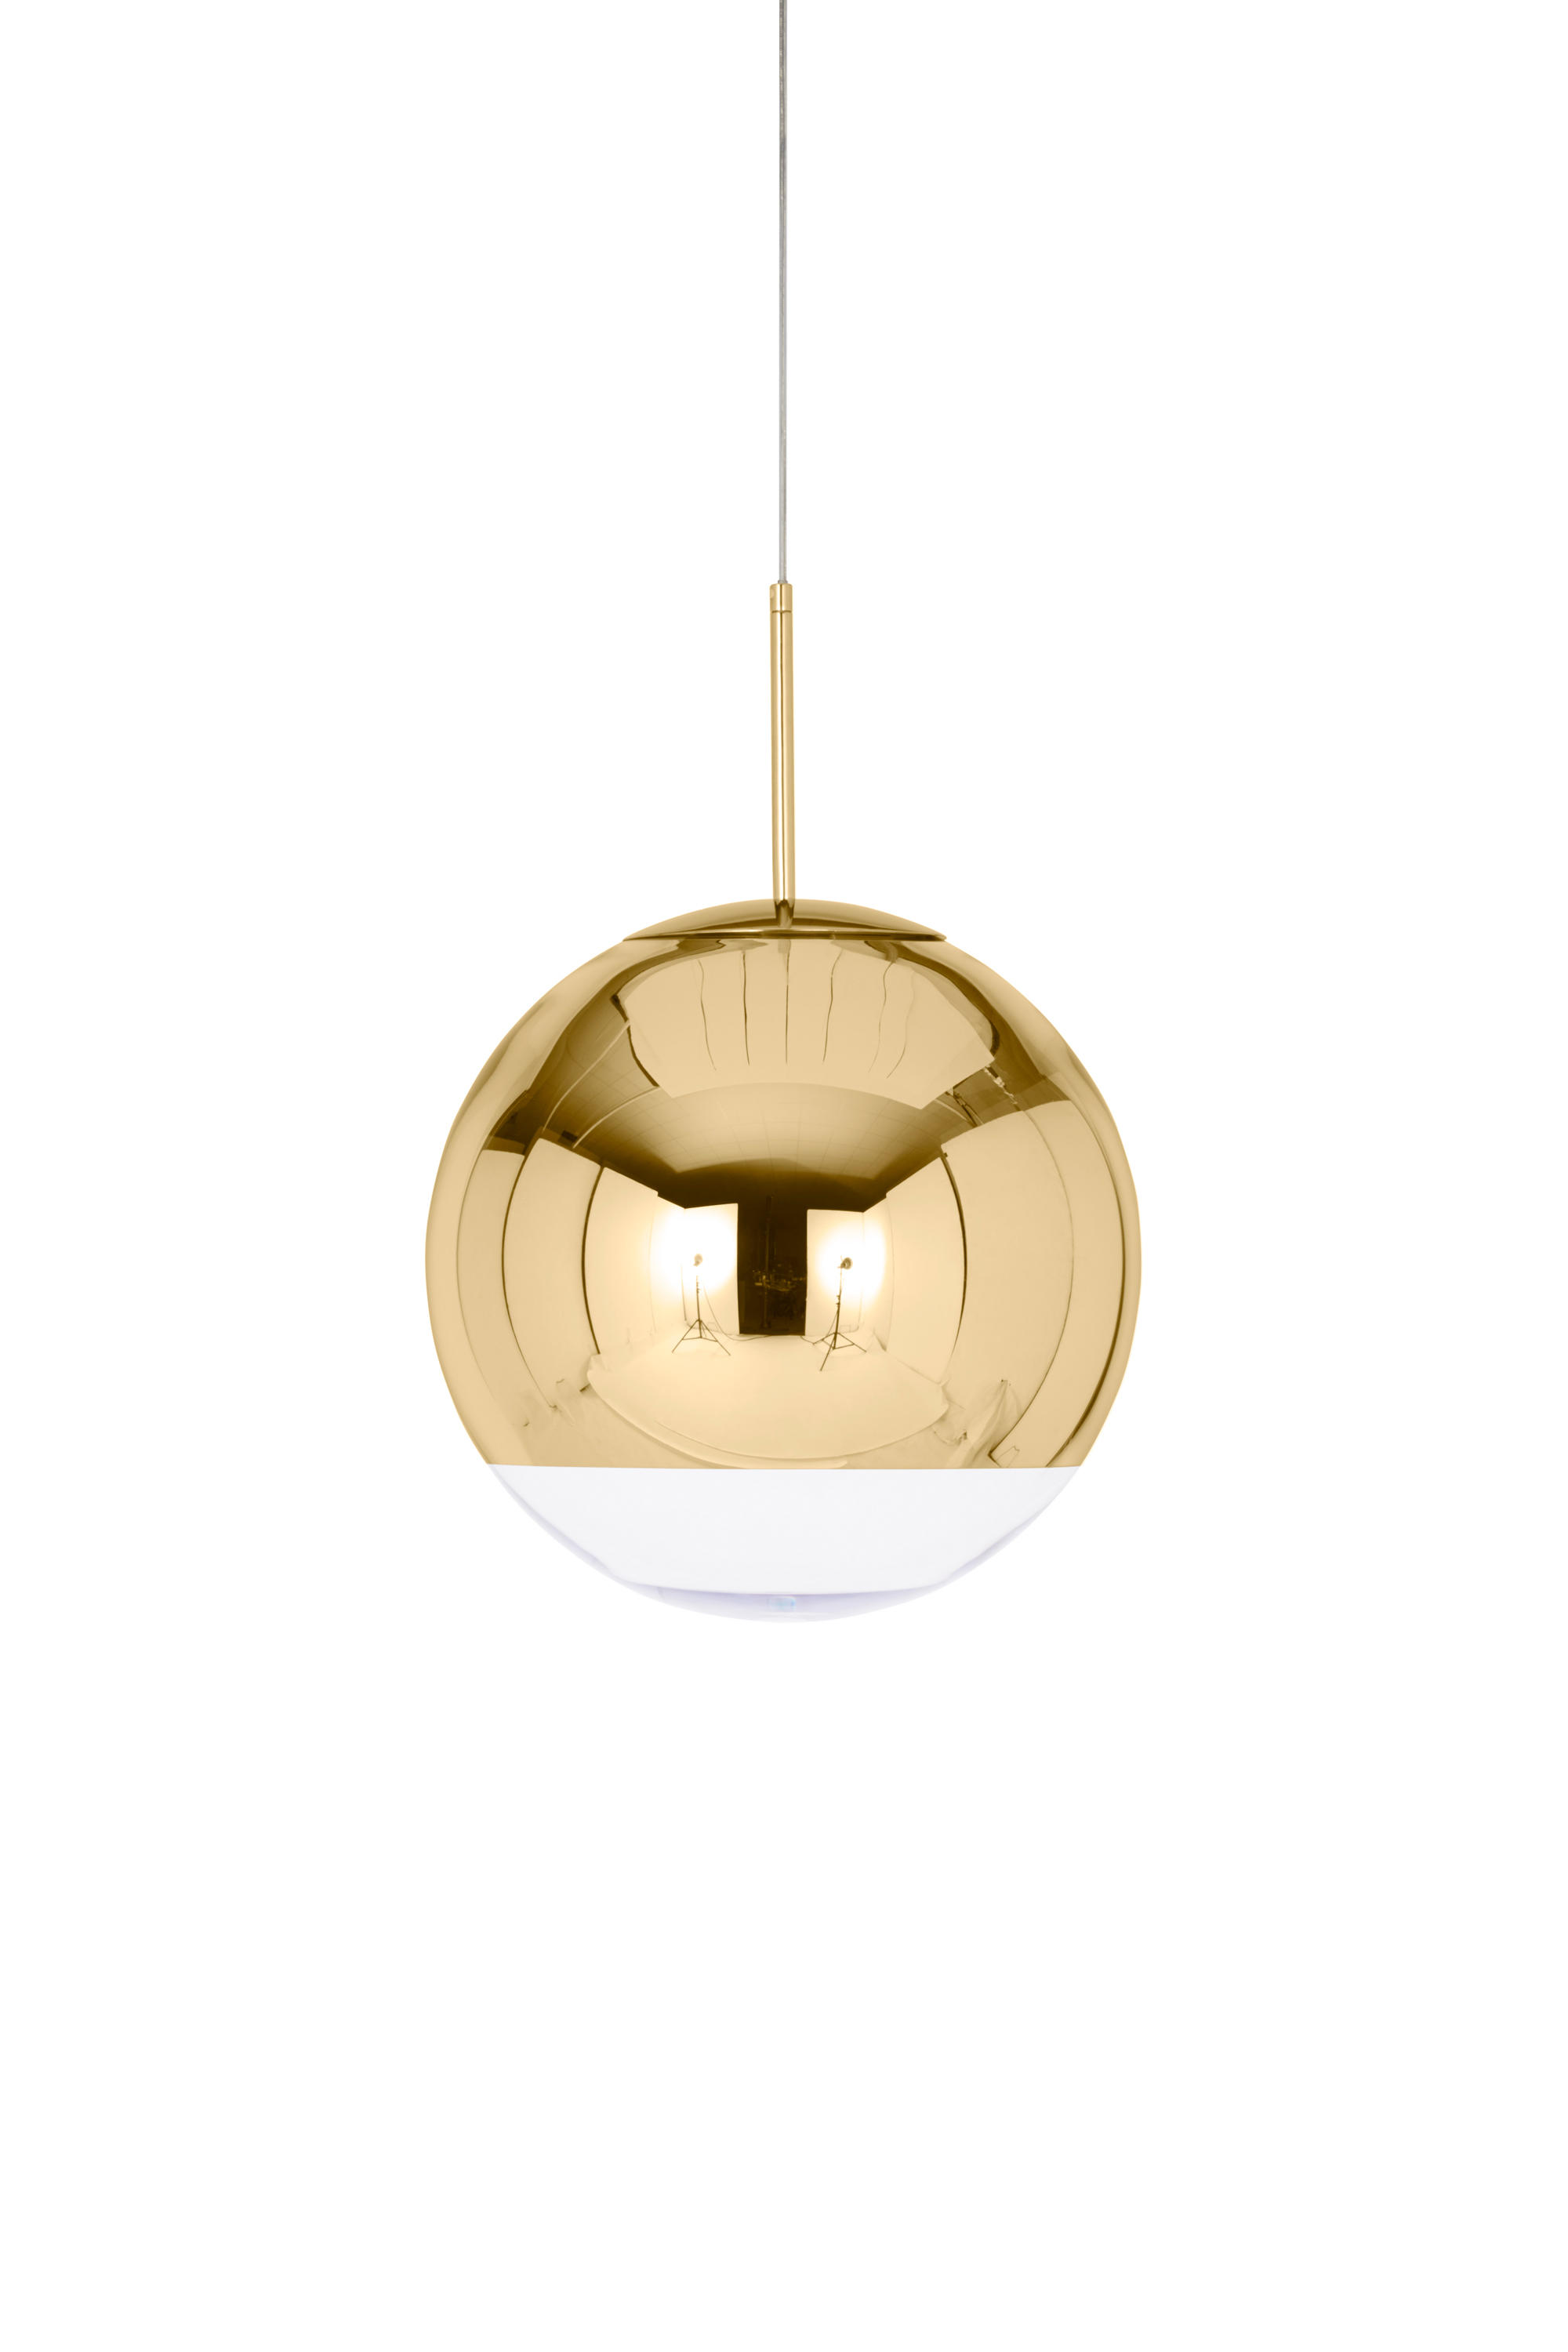 Mirror Ball Pendant Gold 40cm Suspended Lights From Tom